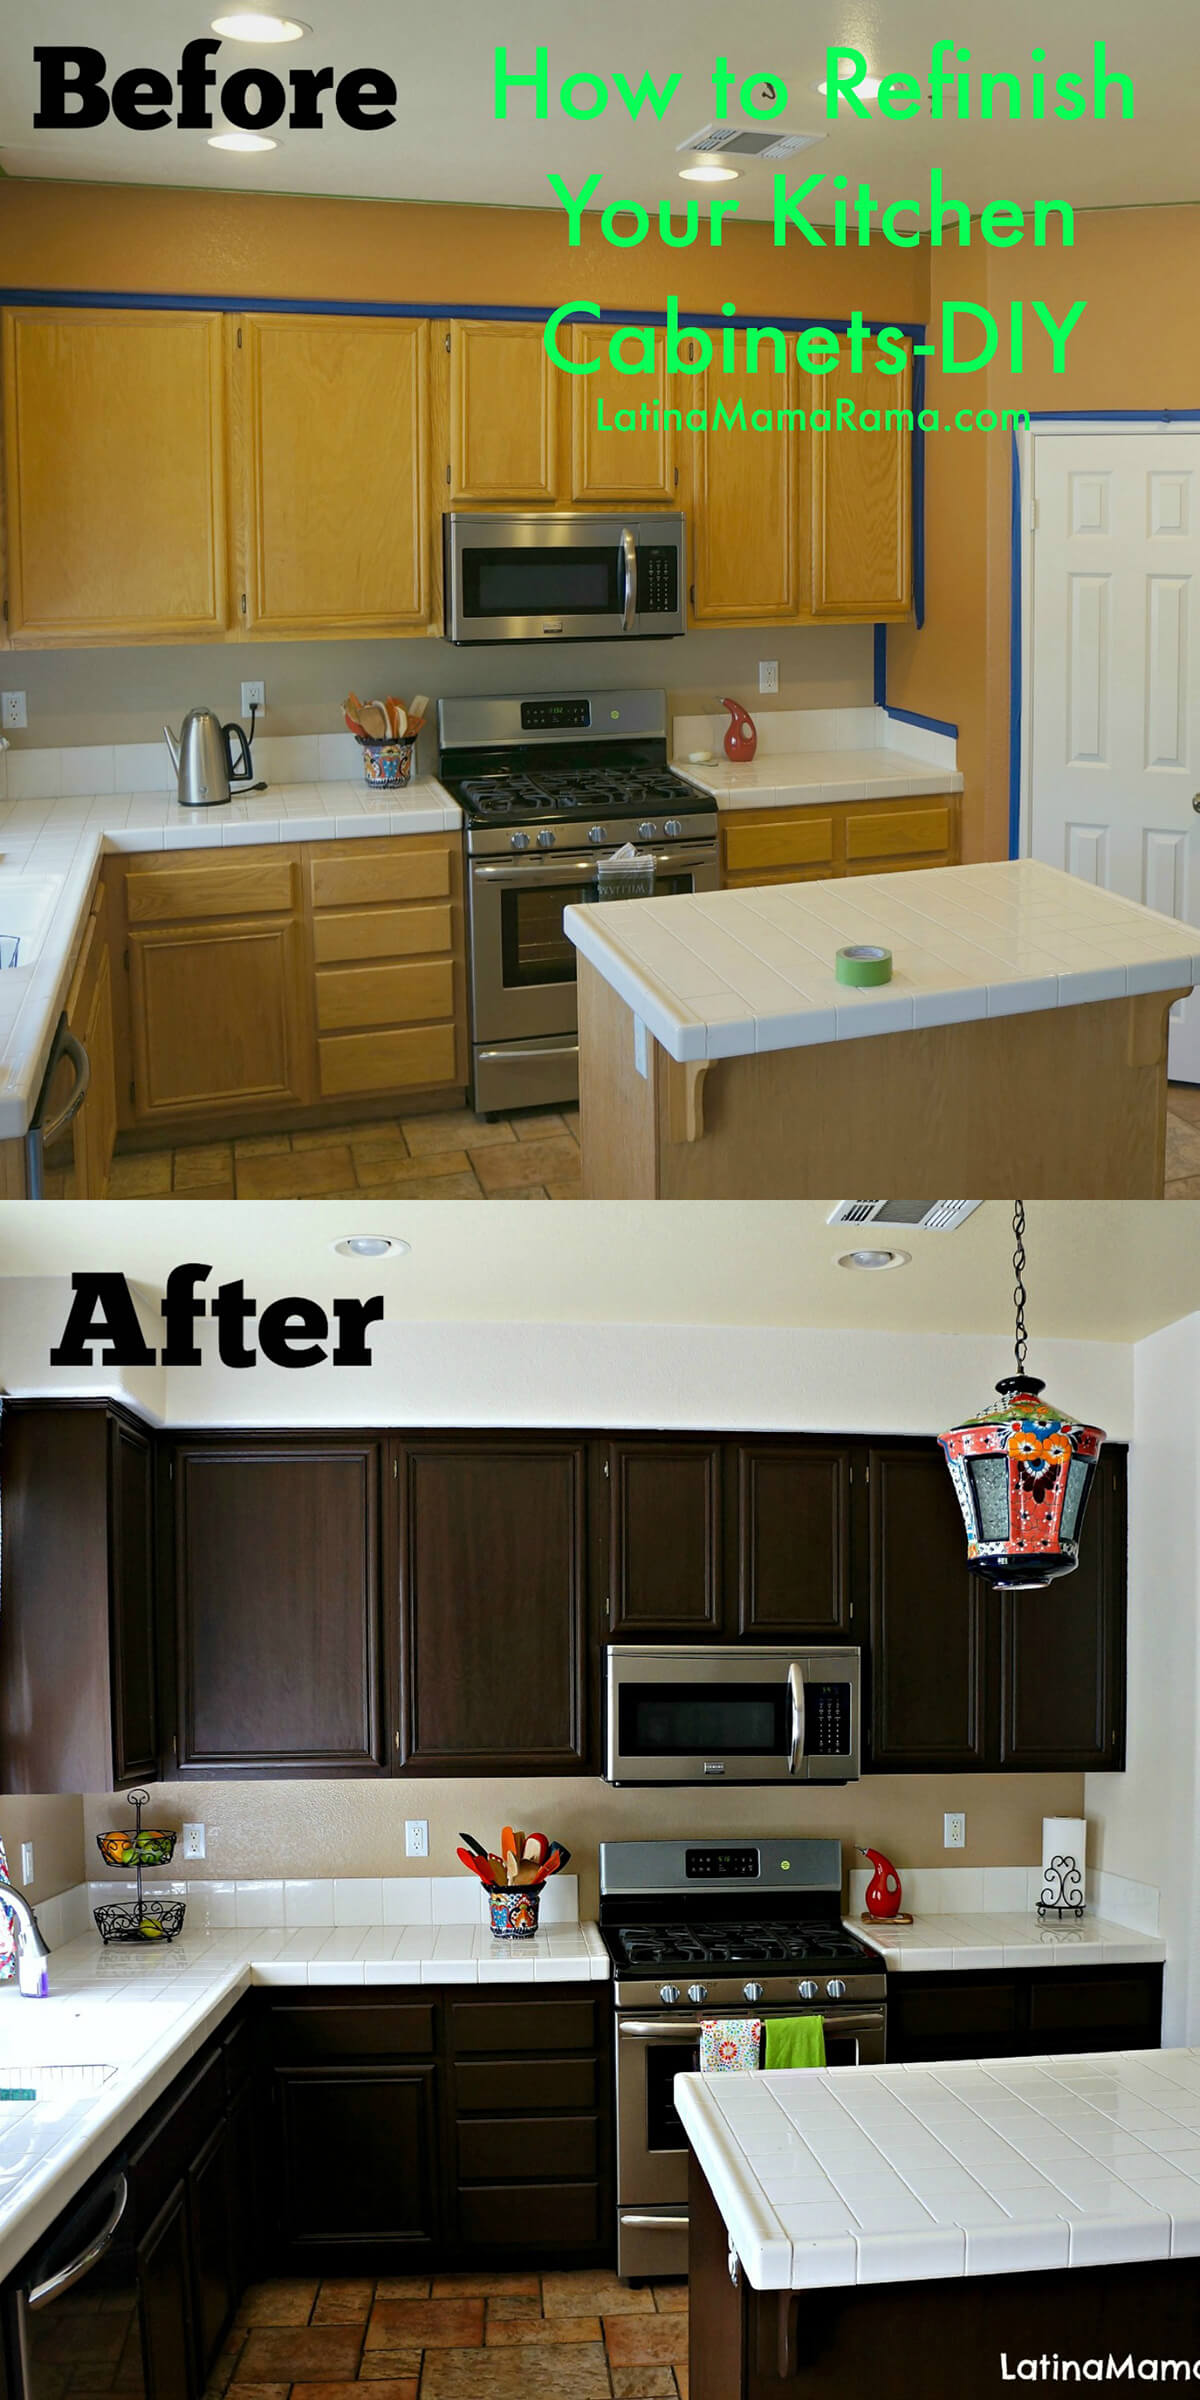 25 Before and After Bud Friendly Kitchen Makeover Ideas and